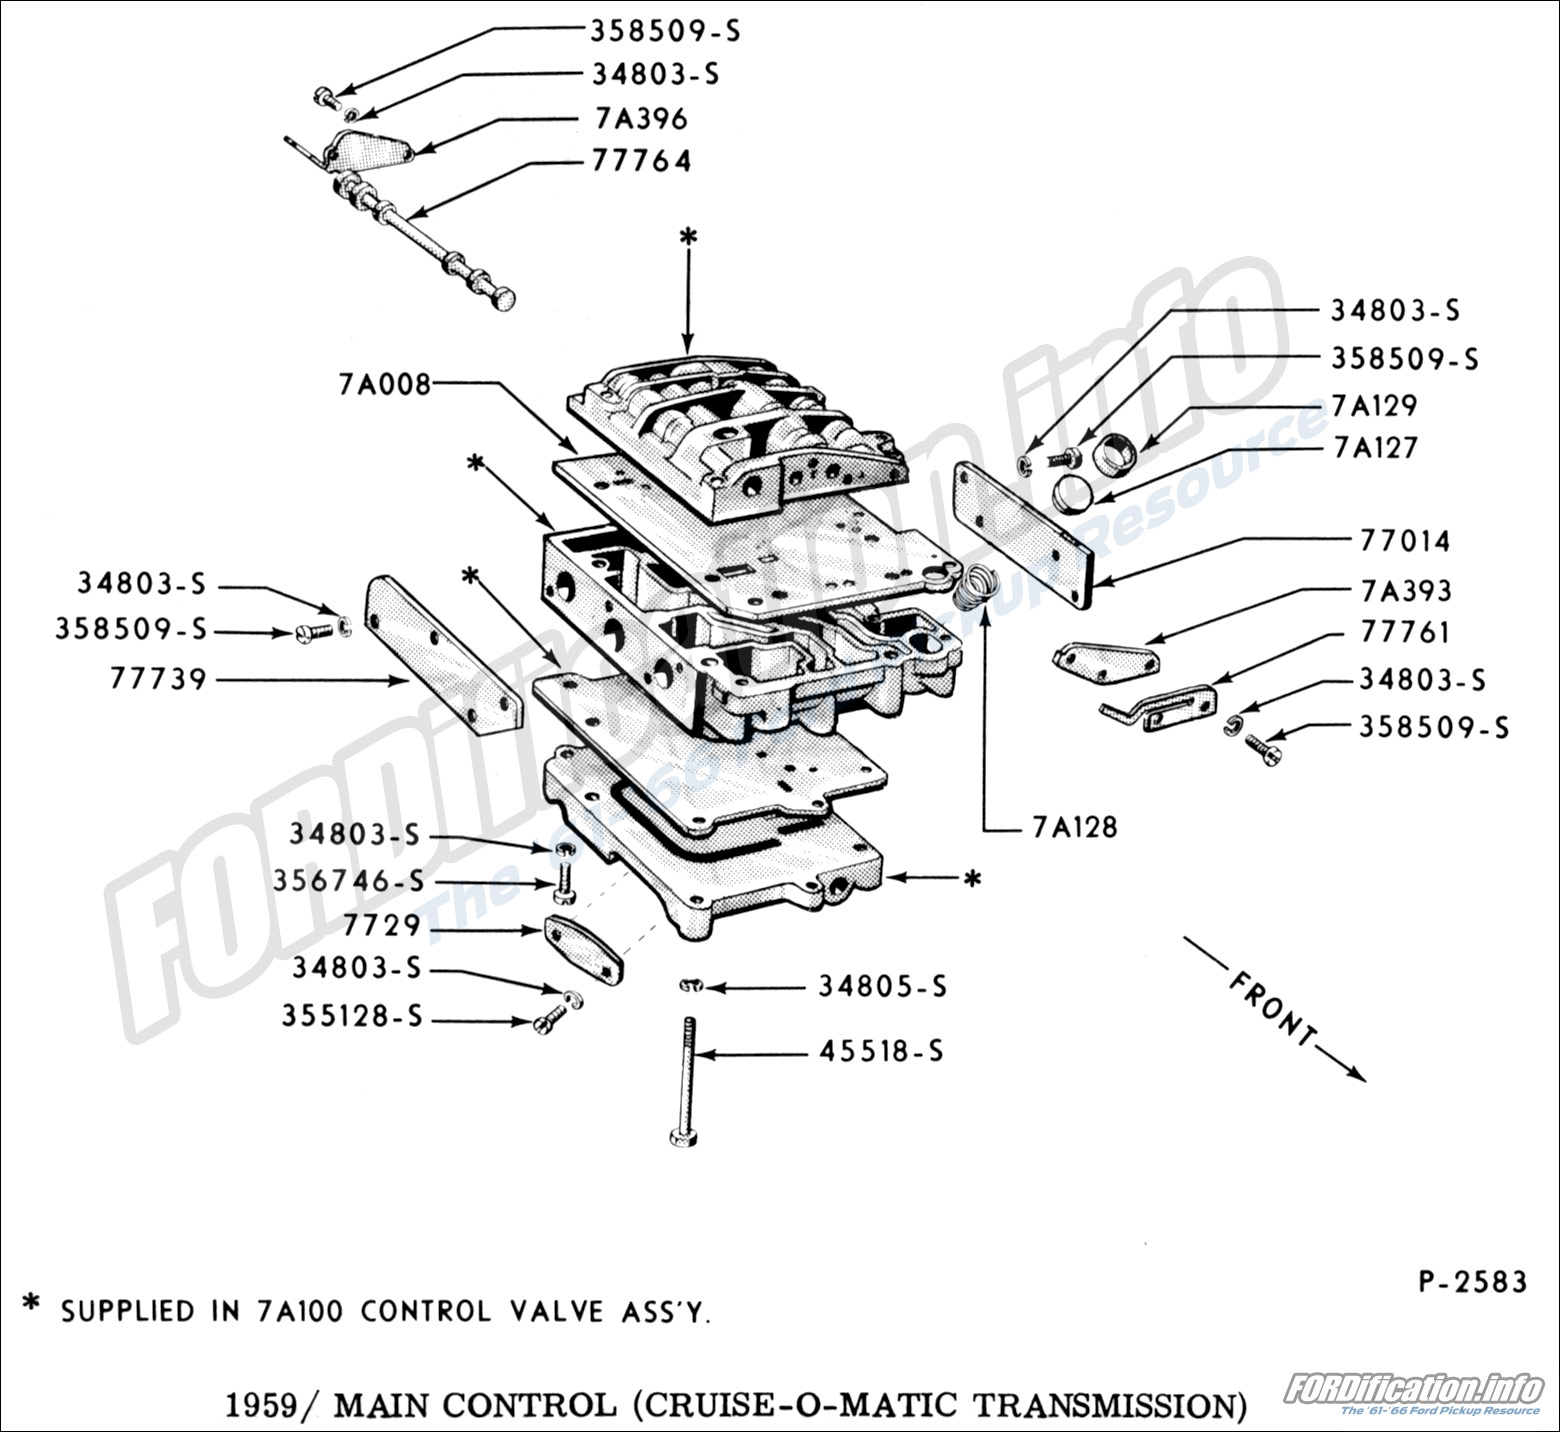 hight resolution of 1959 main control cruise o matic transmission